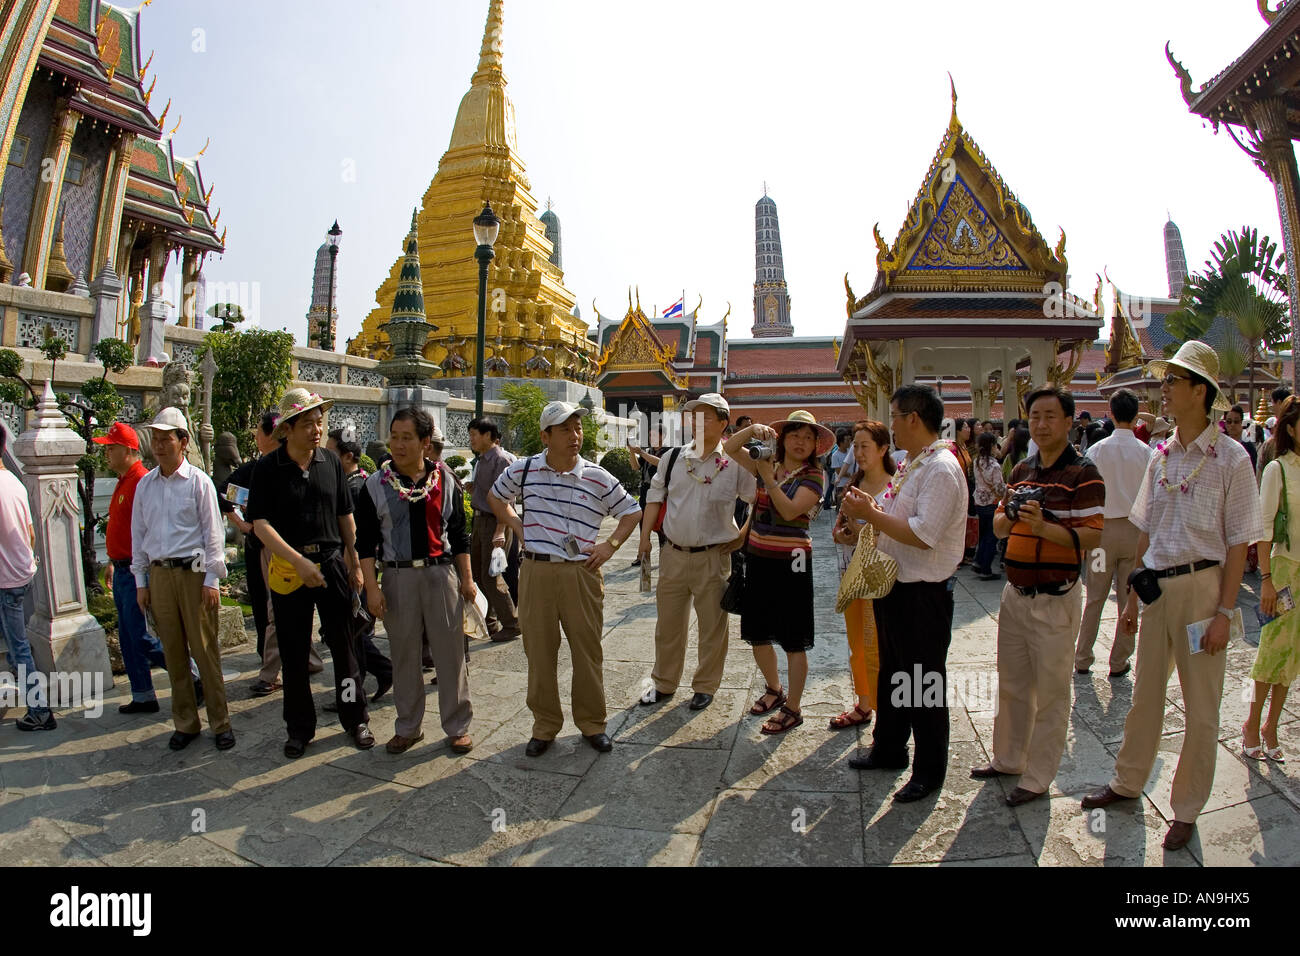 Tourists visit the Grand Palace Complex in Bangkok Thailand Stock Photo